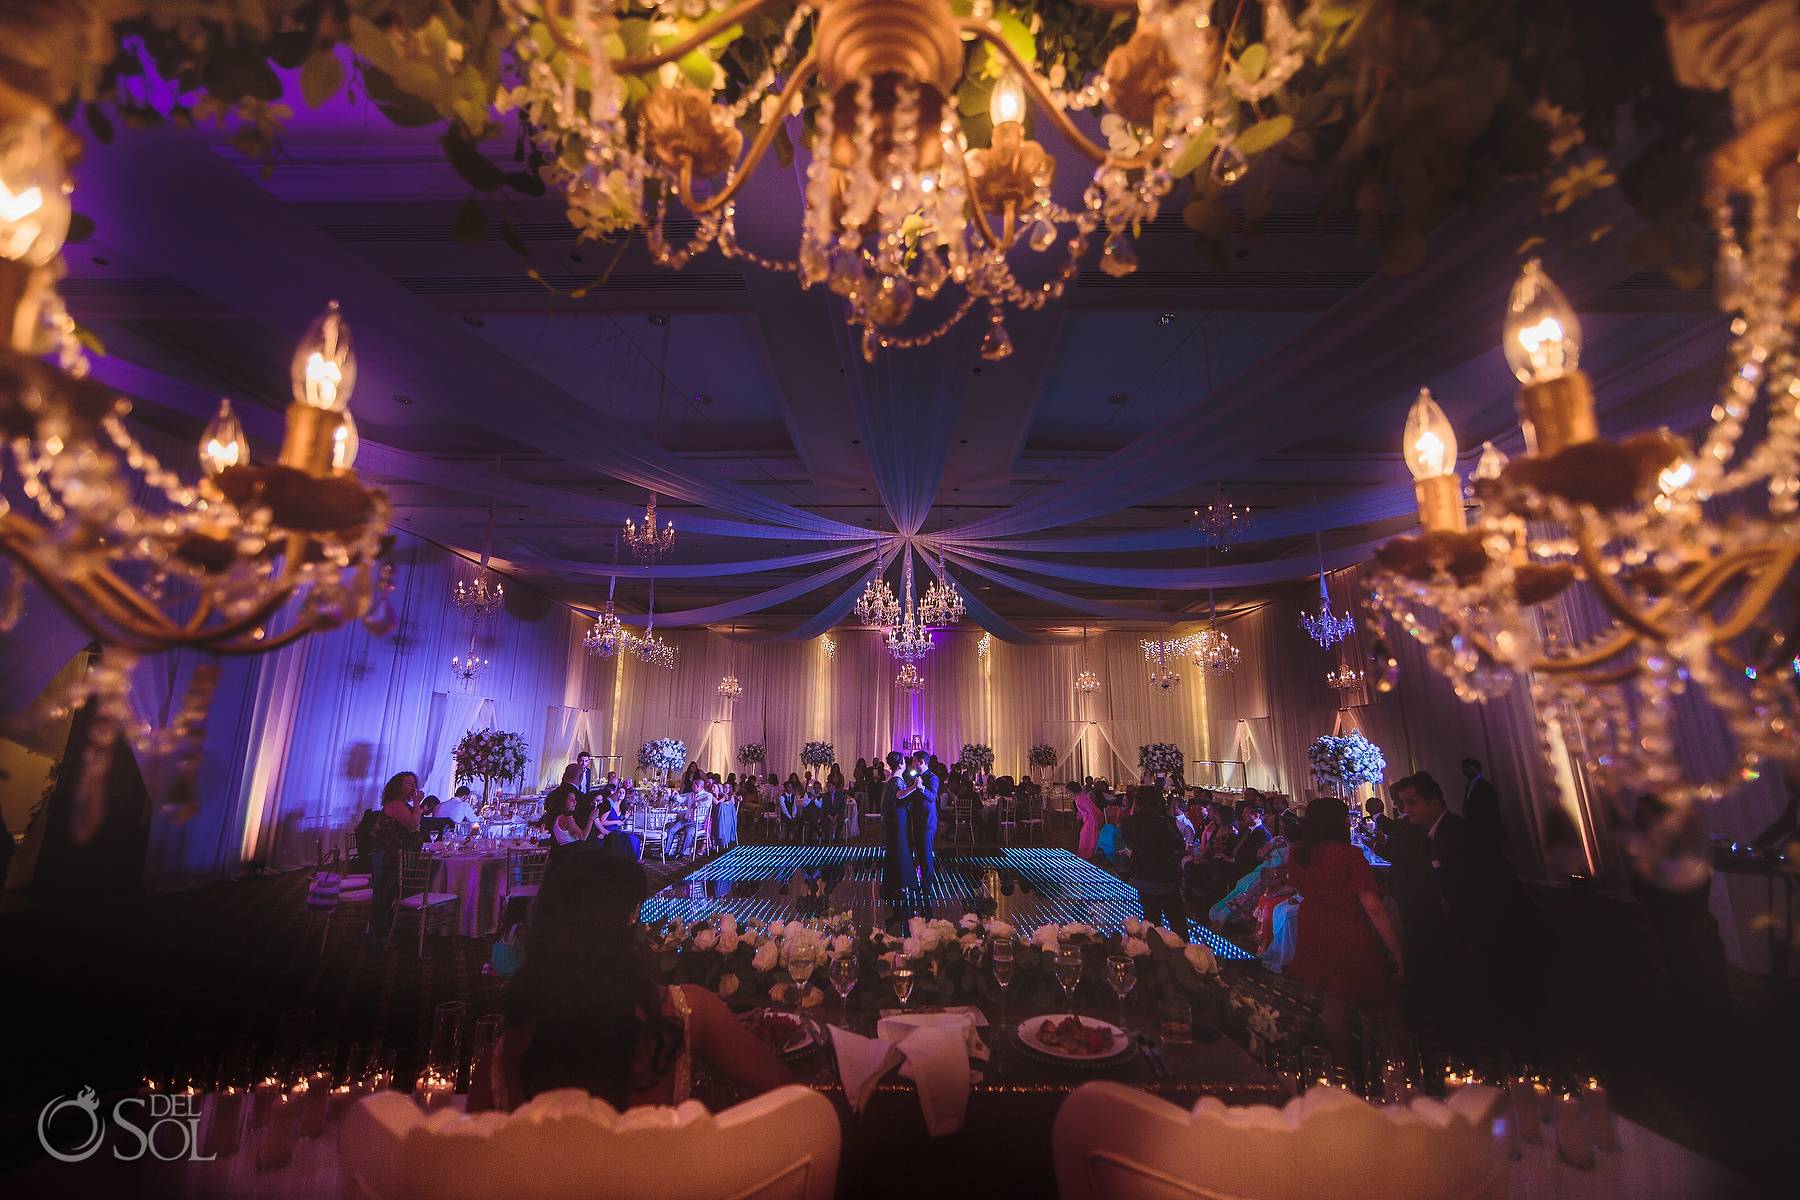 Beauty and the beast wedding decoration Dreams Tulum Hin-Jew wedding